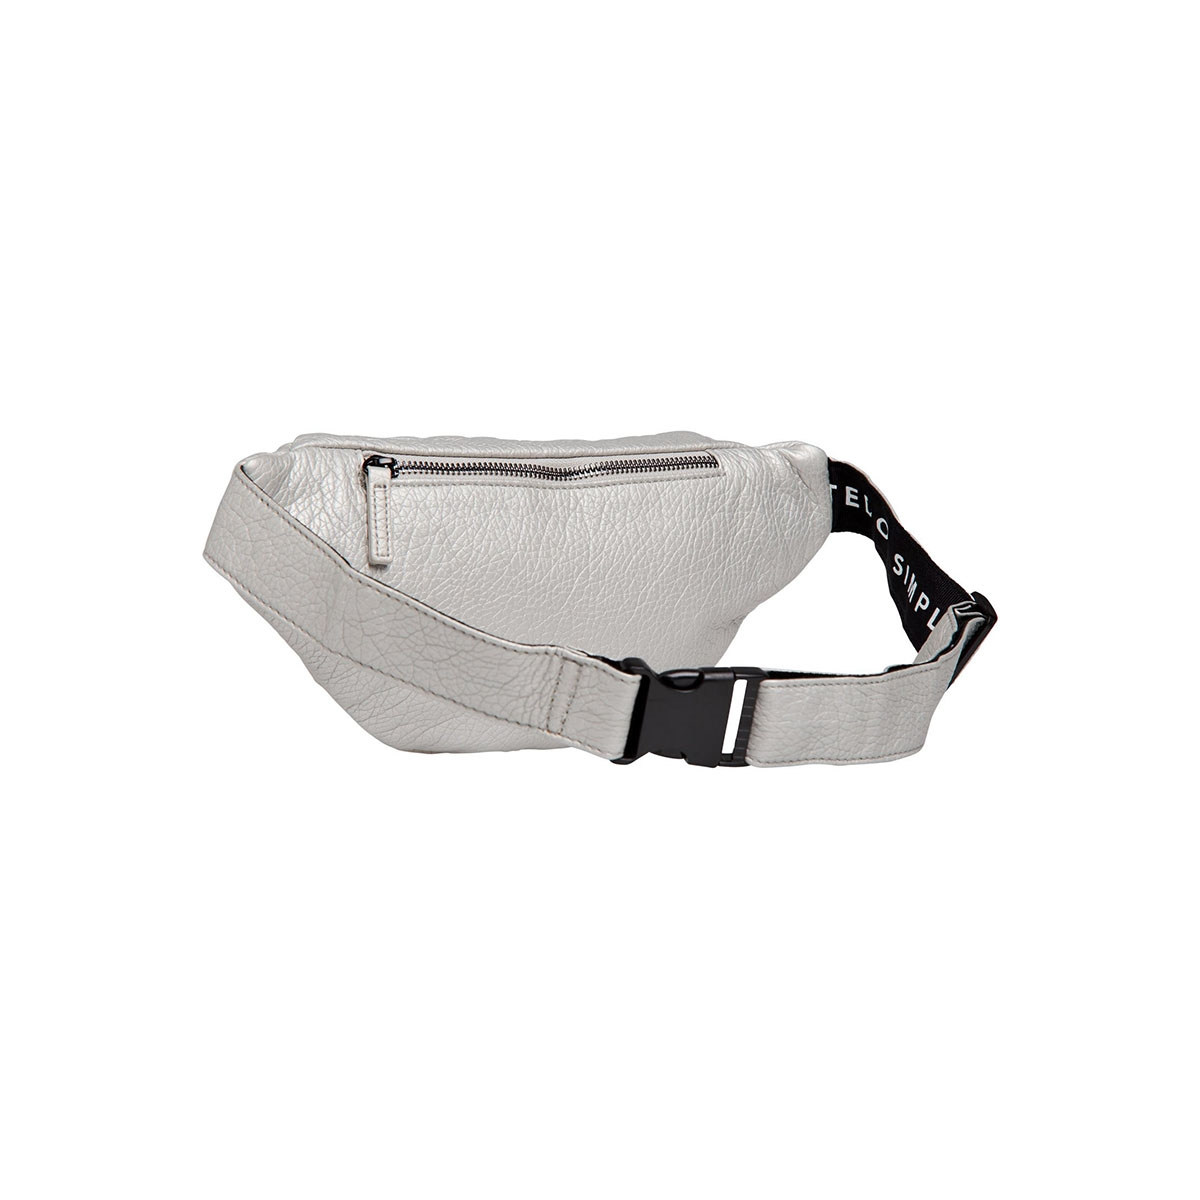 fanny pack 20 960 0201 10 days tas 1015 silver